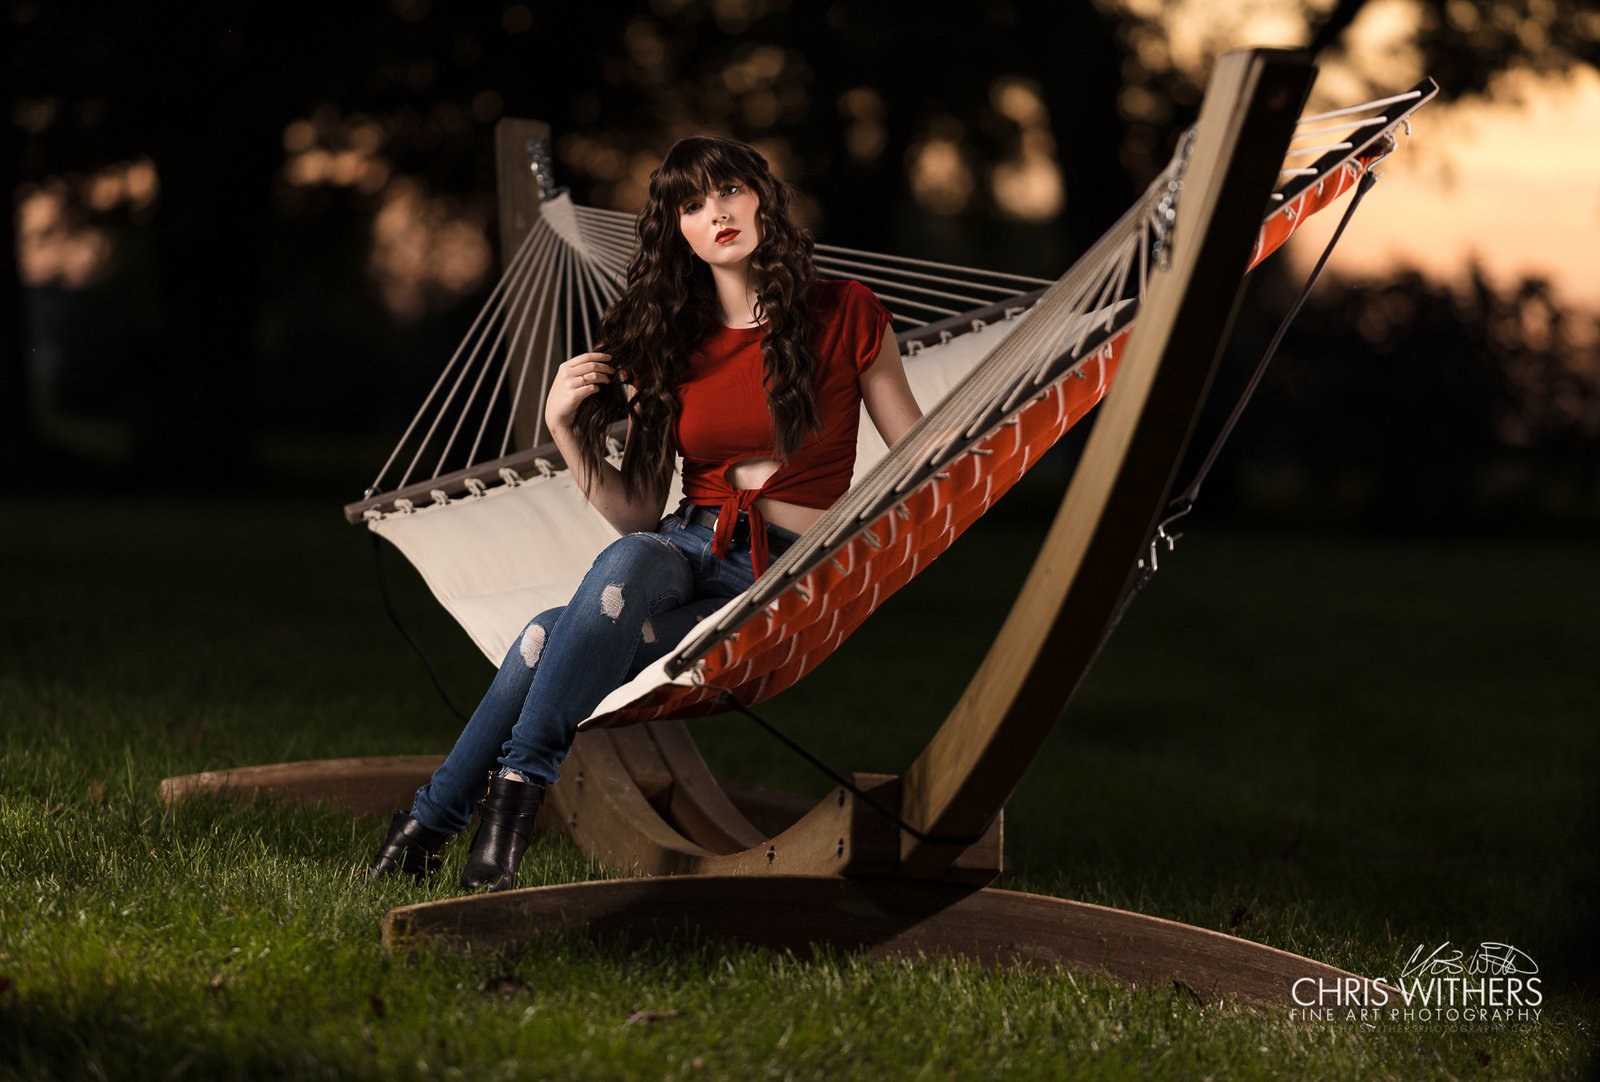 Springfield Illinois Senior Photographer - Chris Withers Photography (8 of 9)